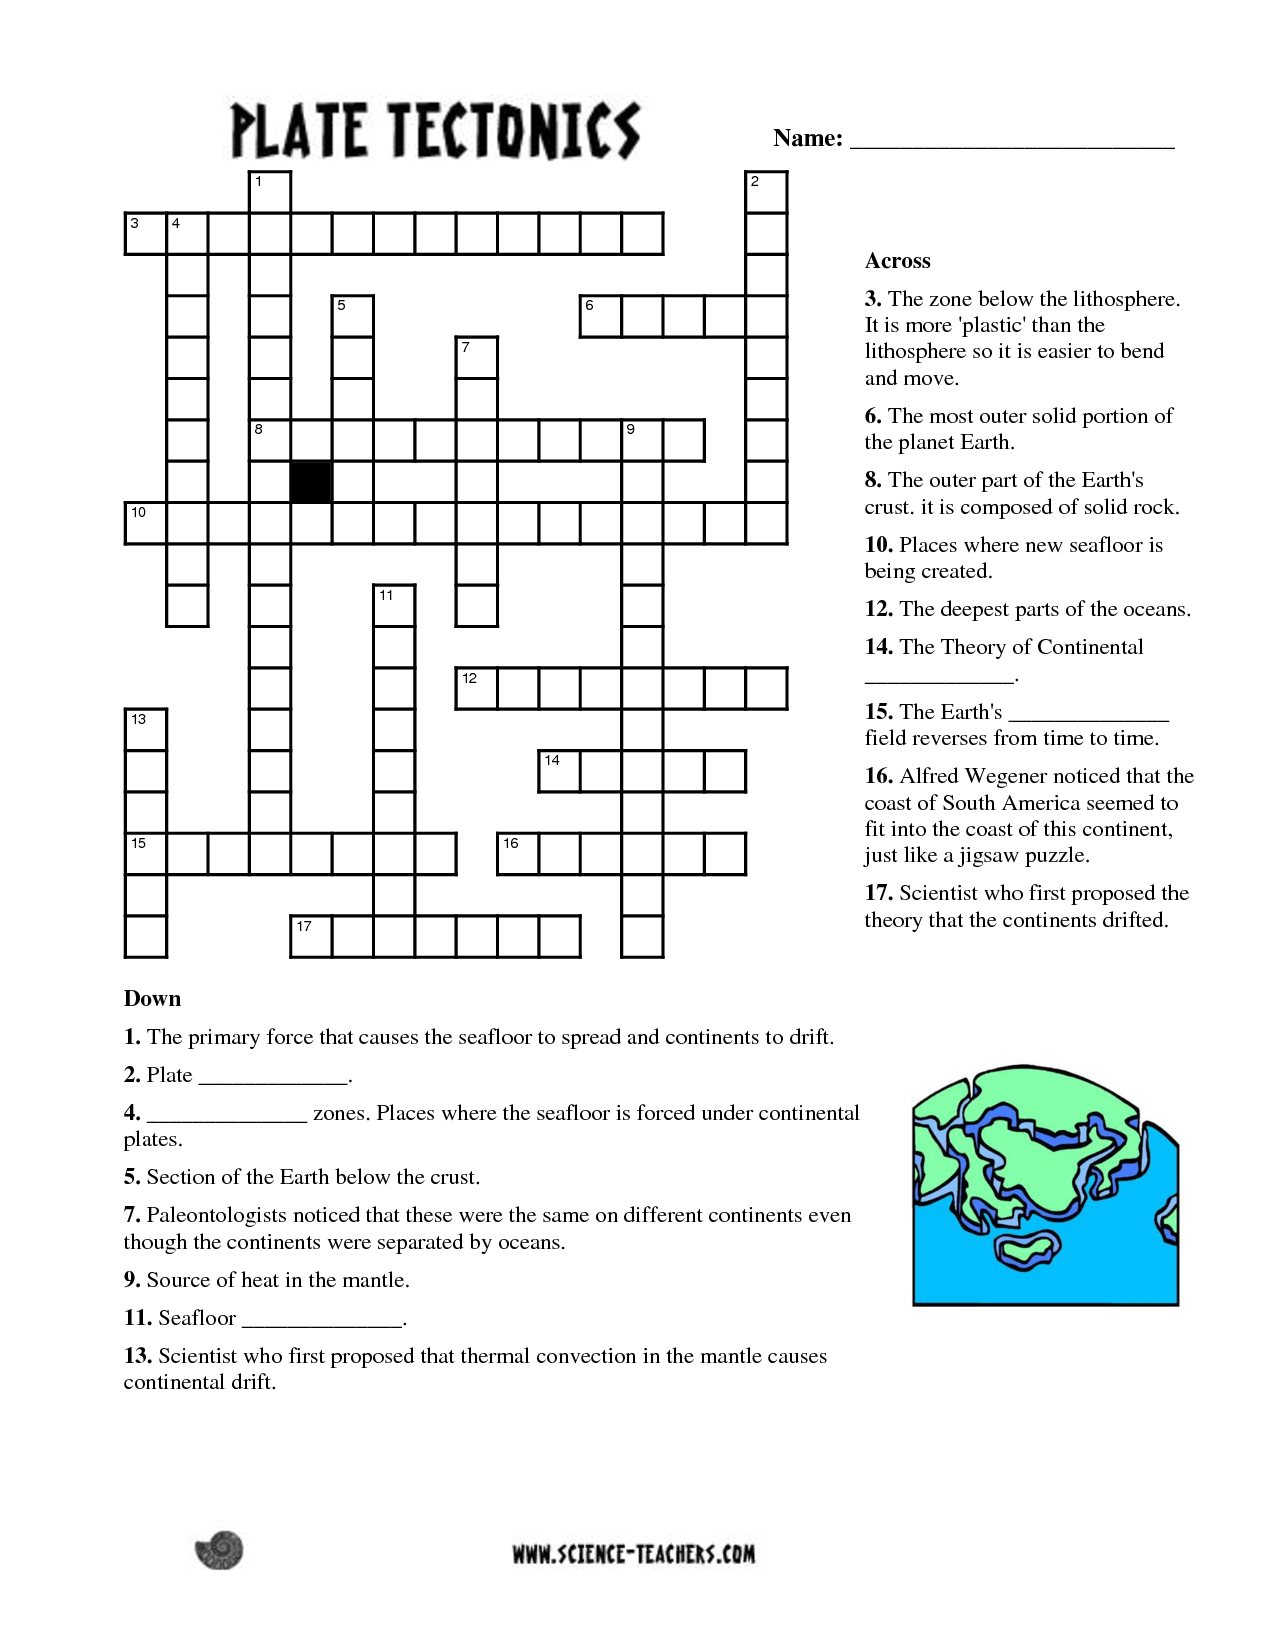 Planets Crossword Puzzle Worksheet - Pics About Space | Fun Science - Printable Science Crossword Puzzles